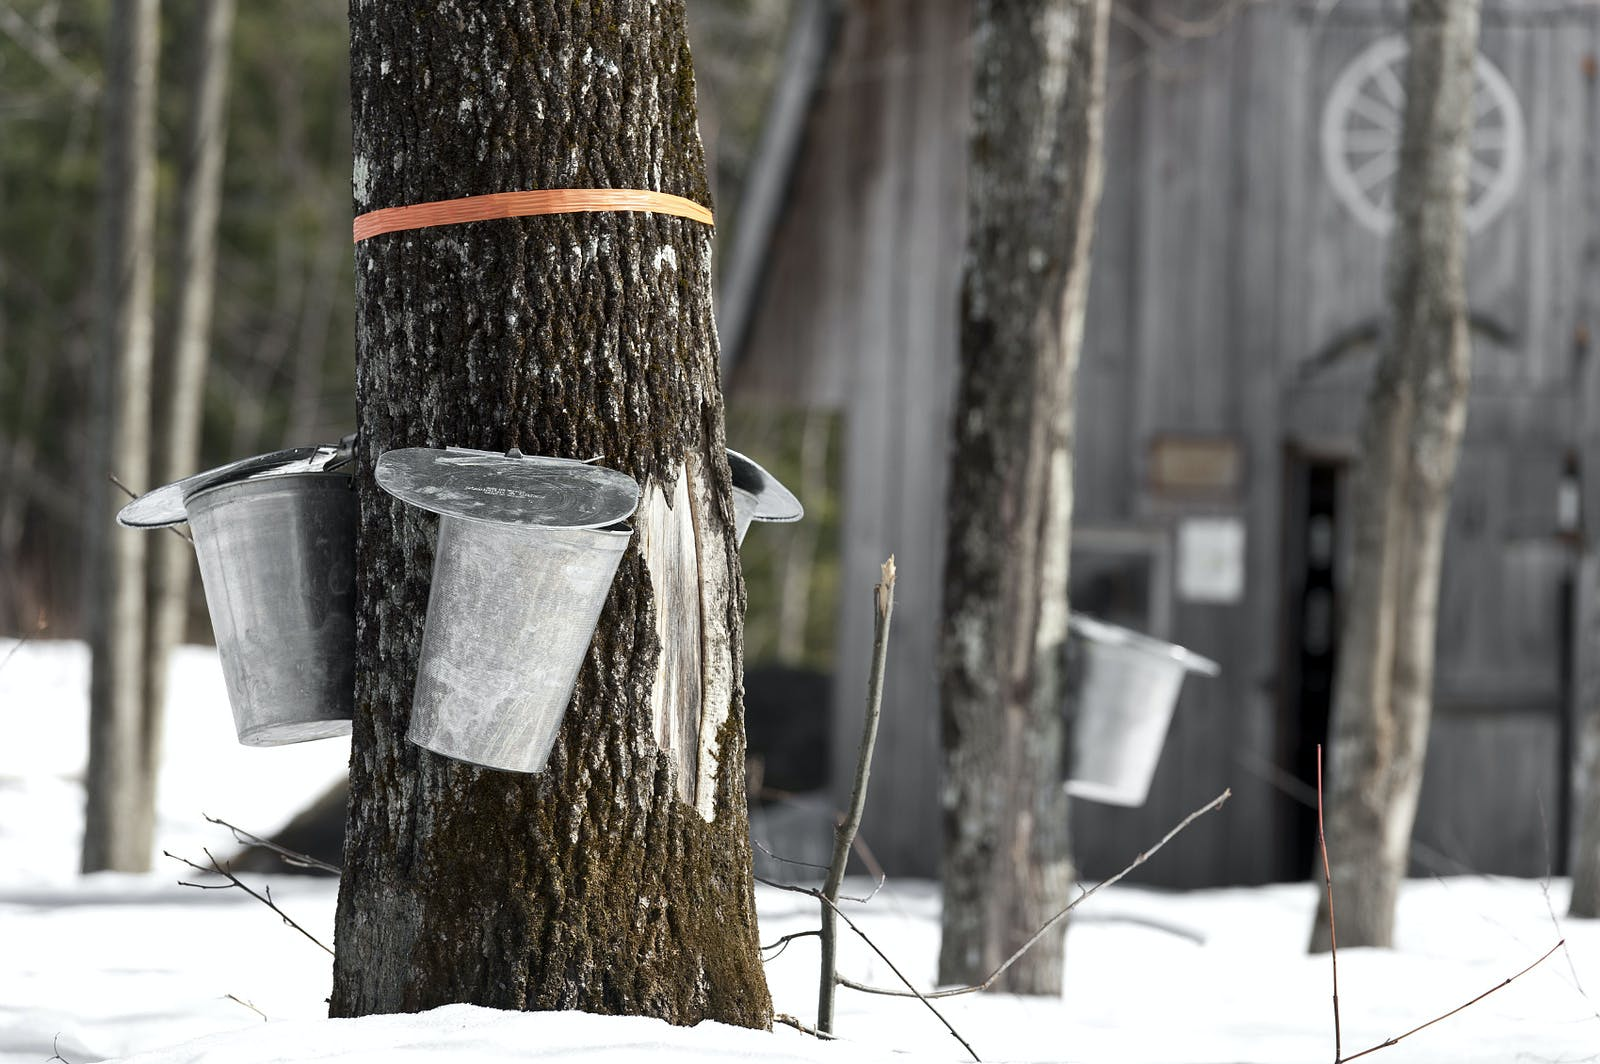 maple syrup collection from a tree